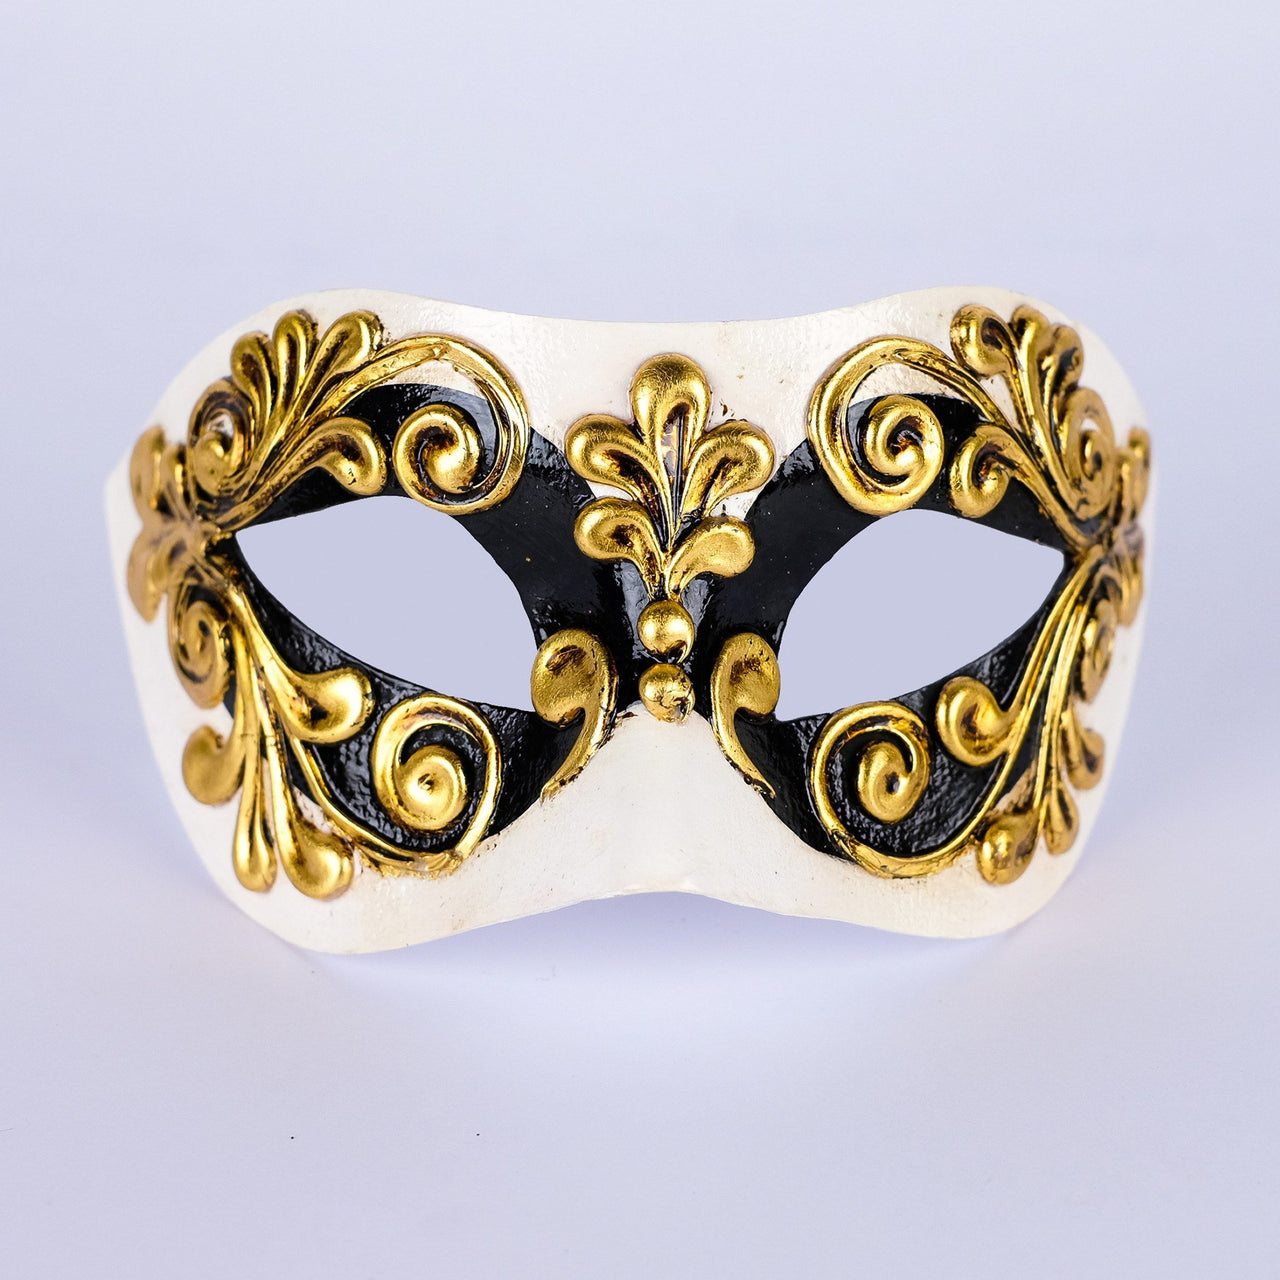 Colombina Occhi Black Masquerade Mask